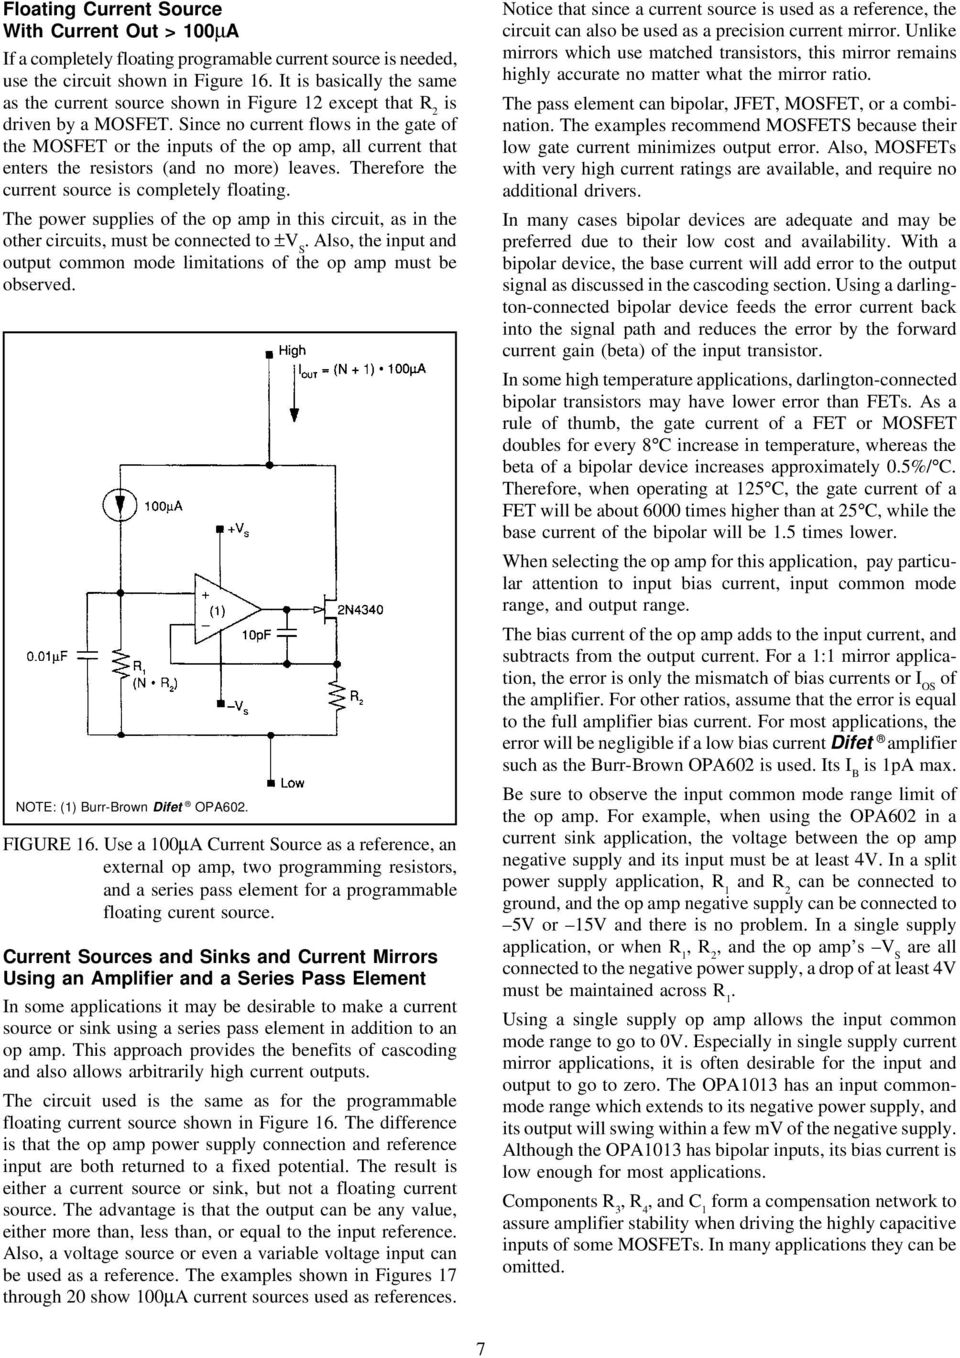 Design Of Fixed Current Sources Pdf Switching Power Supply By Lm3524 And Lm324 Circuit Wiring Diagrams Since No Flows In The Gate Mosfet Or Inputs Op